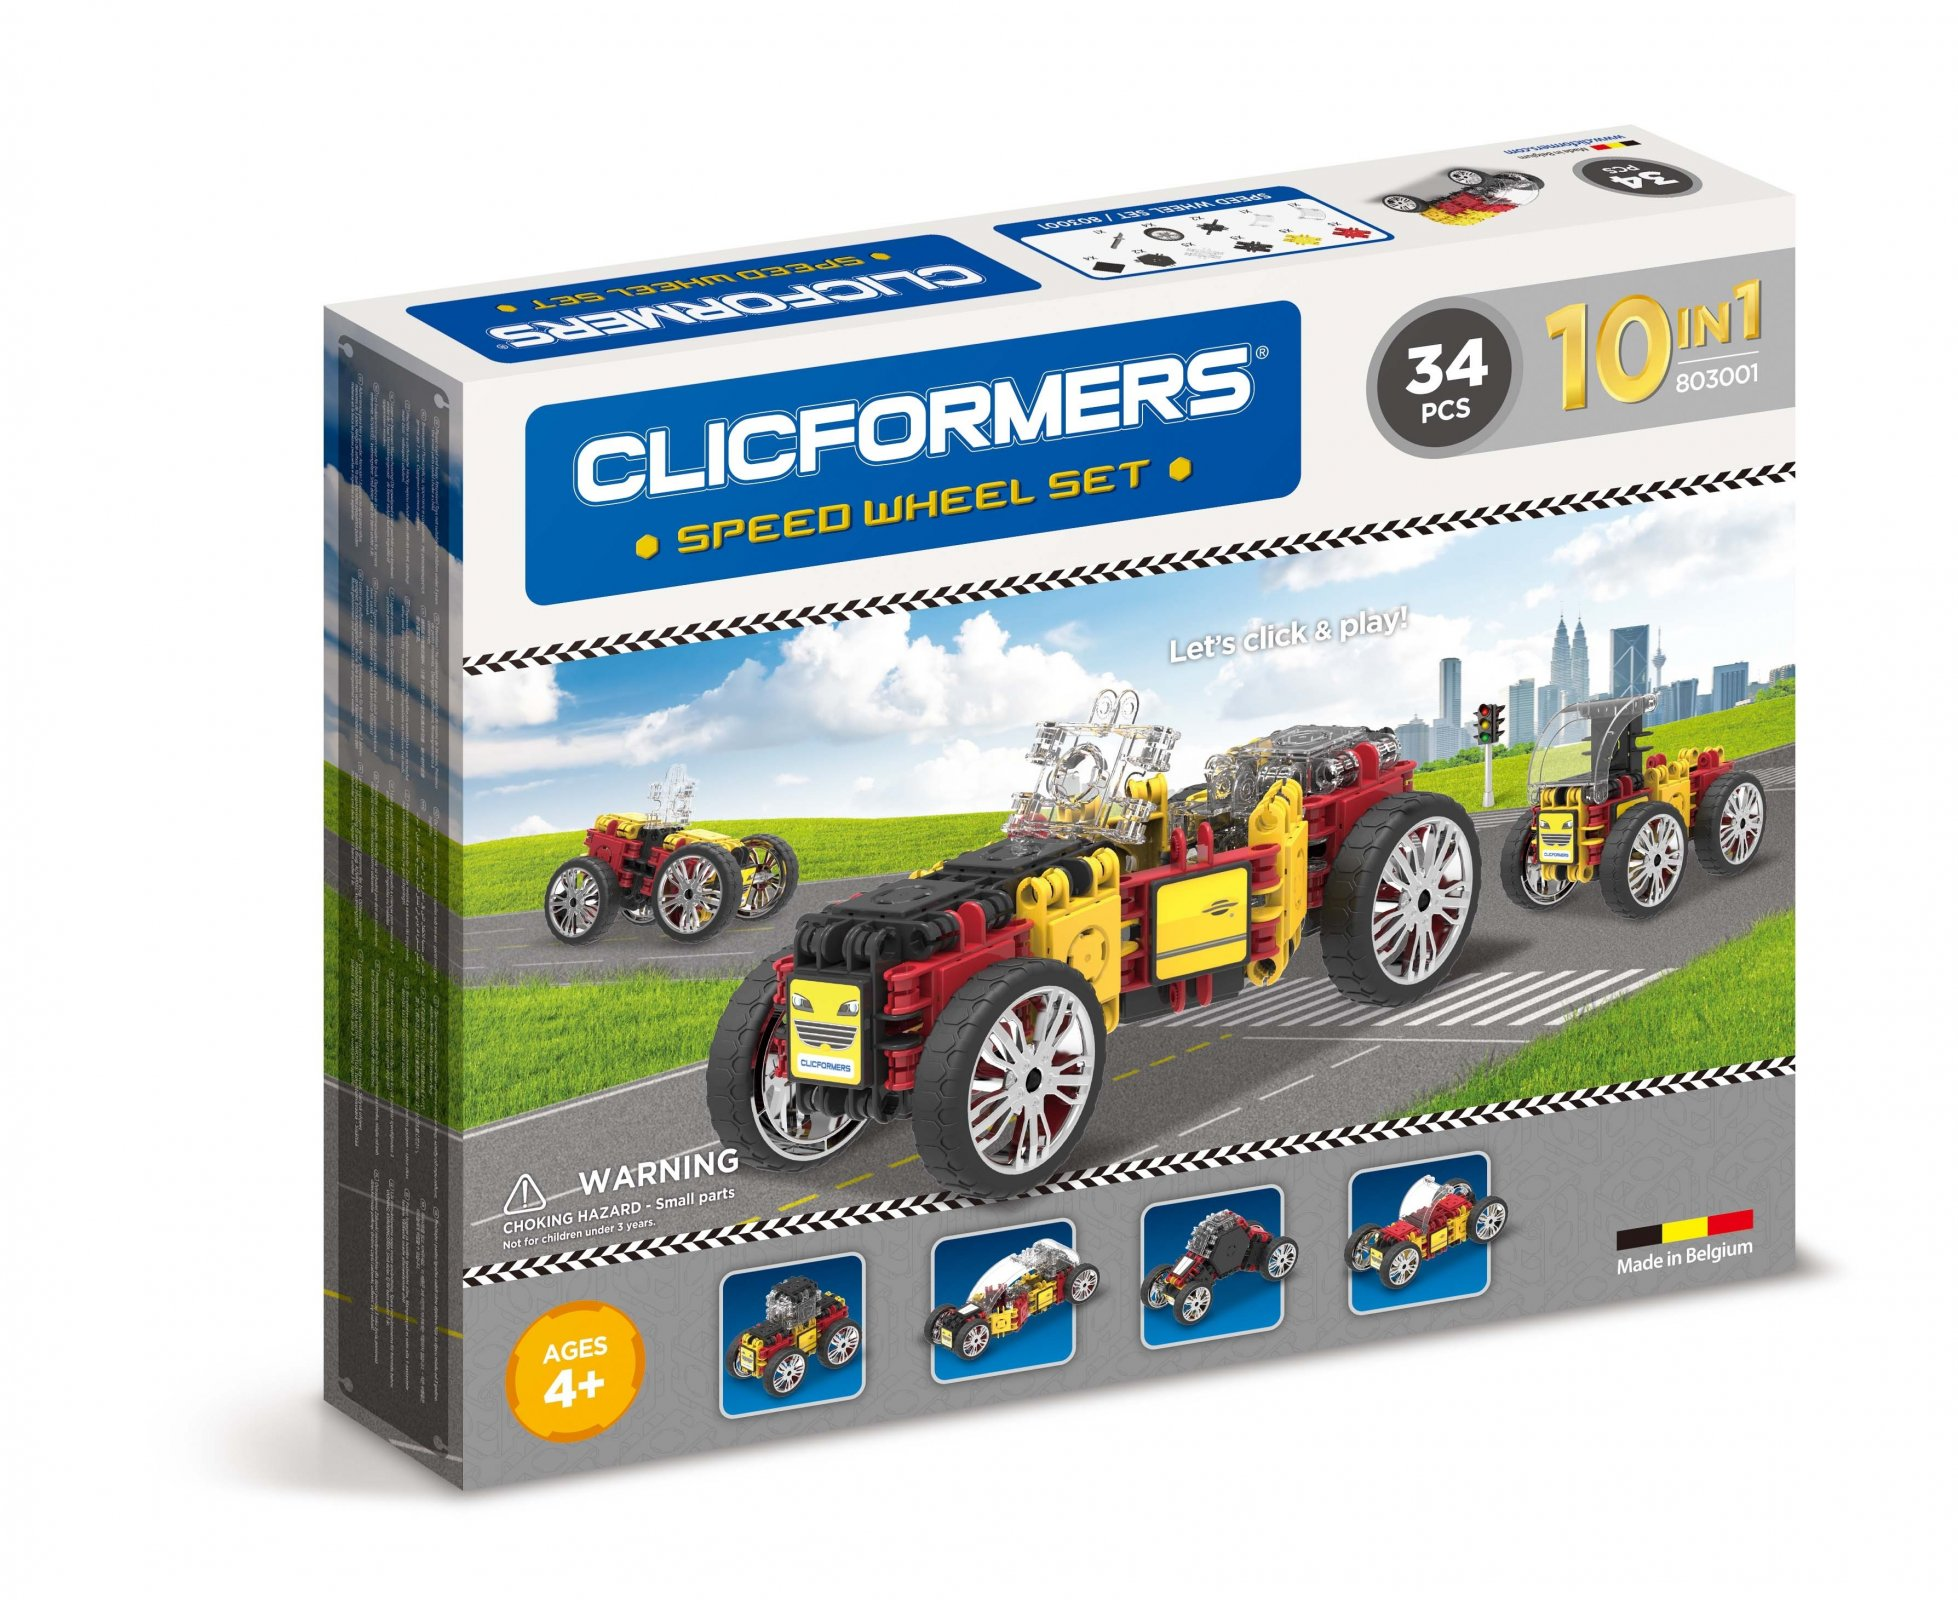 CLICFORMERS Speed Wheel Set 34 PCS